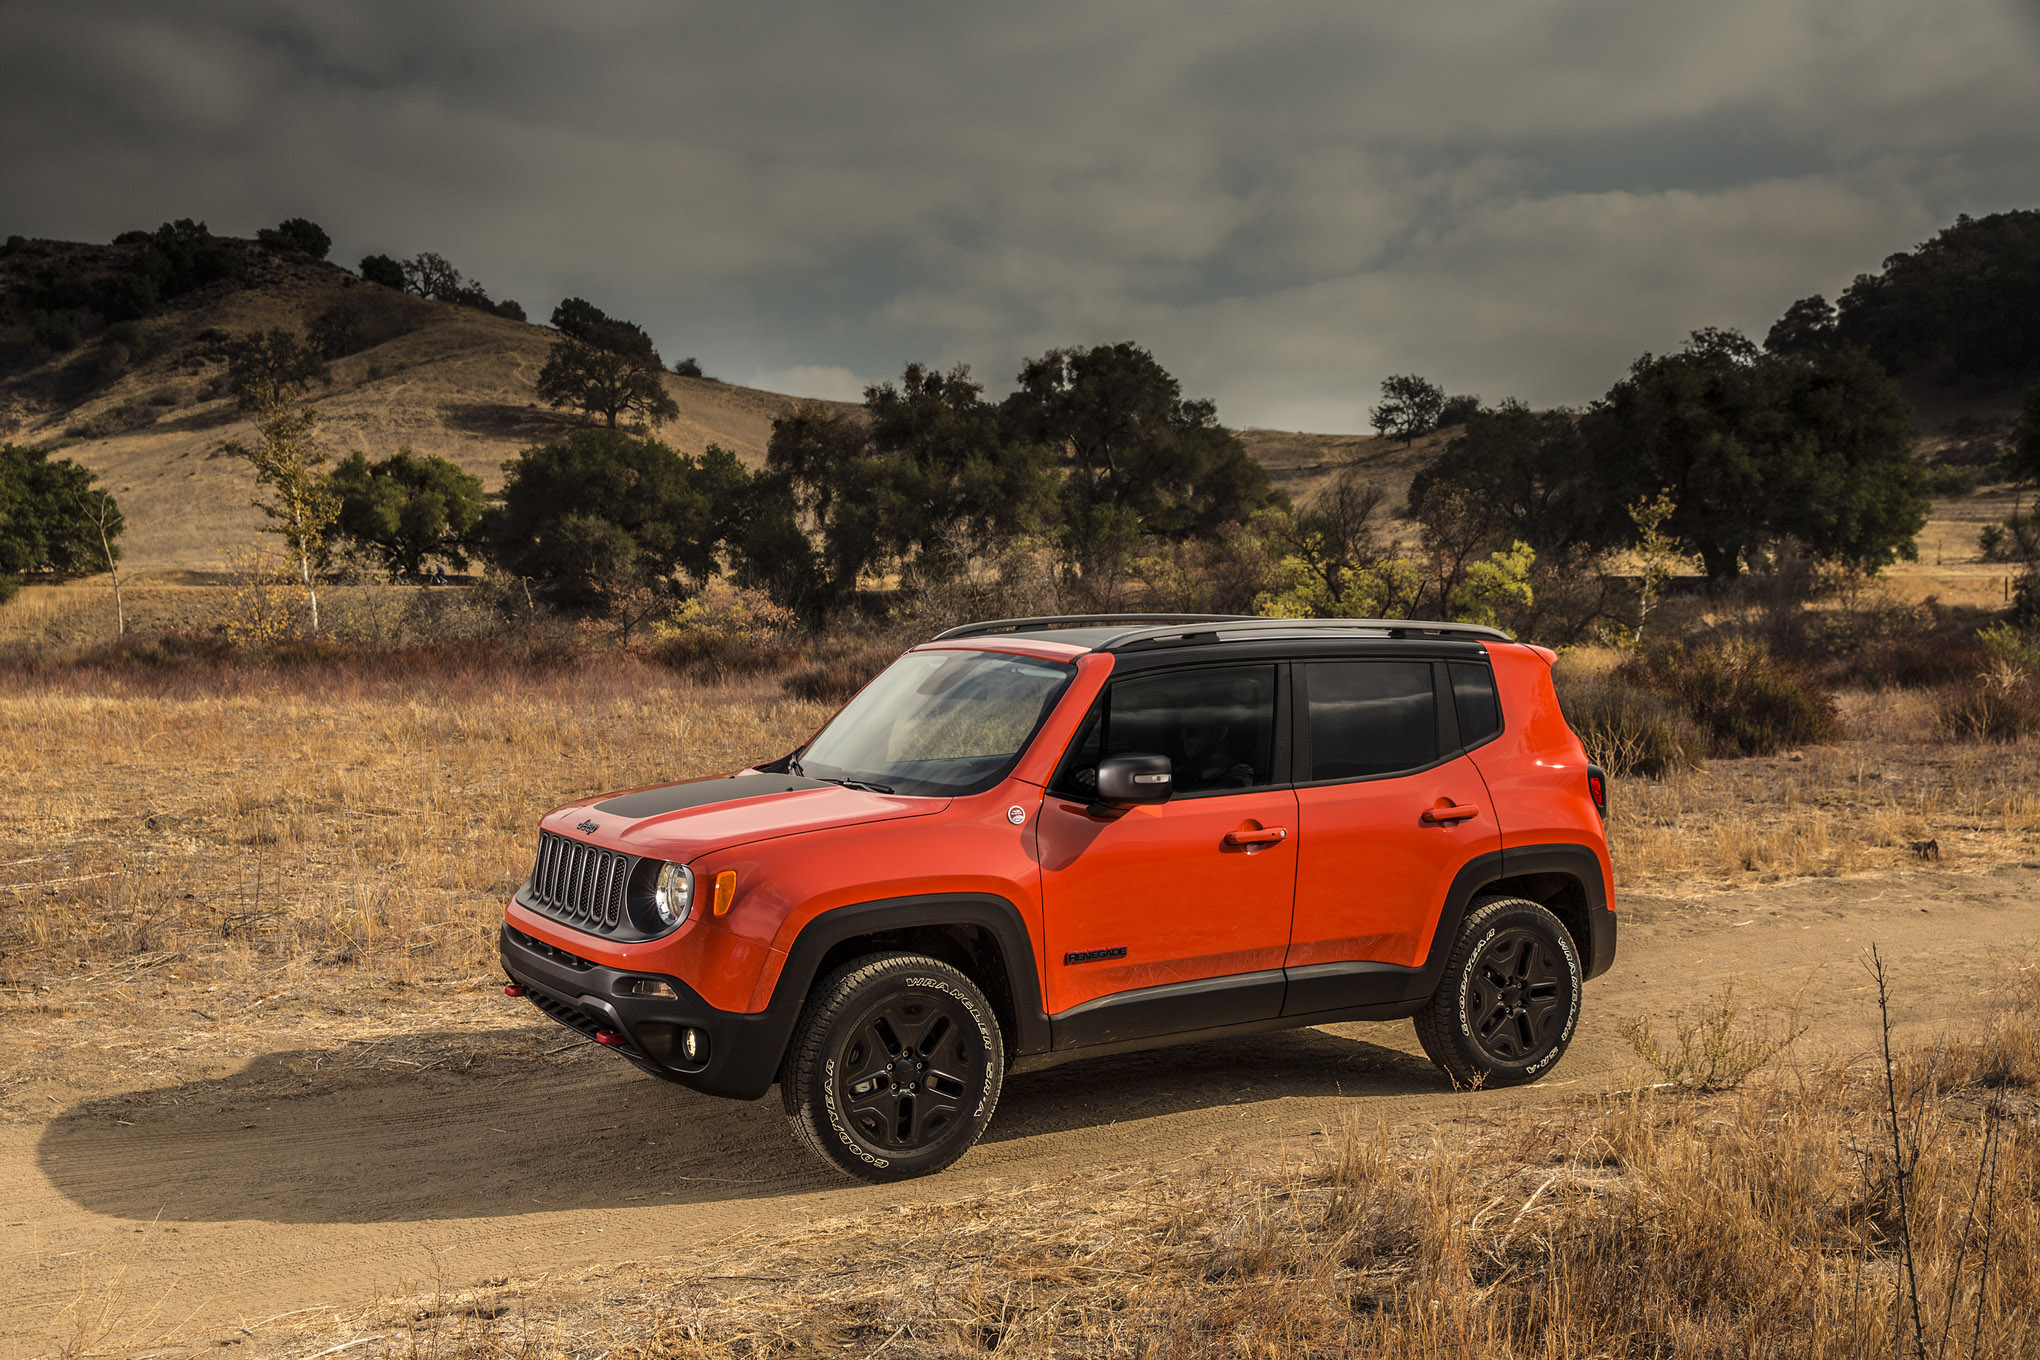 001 auto news jp jeep renegade consumer reports least satisfying